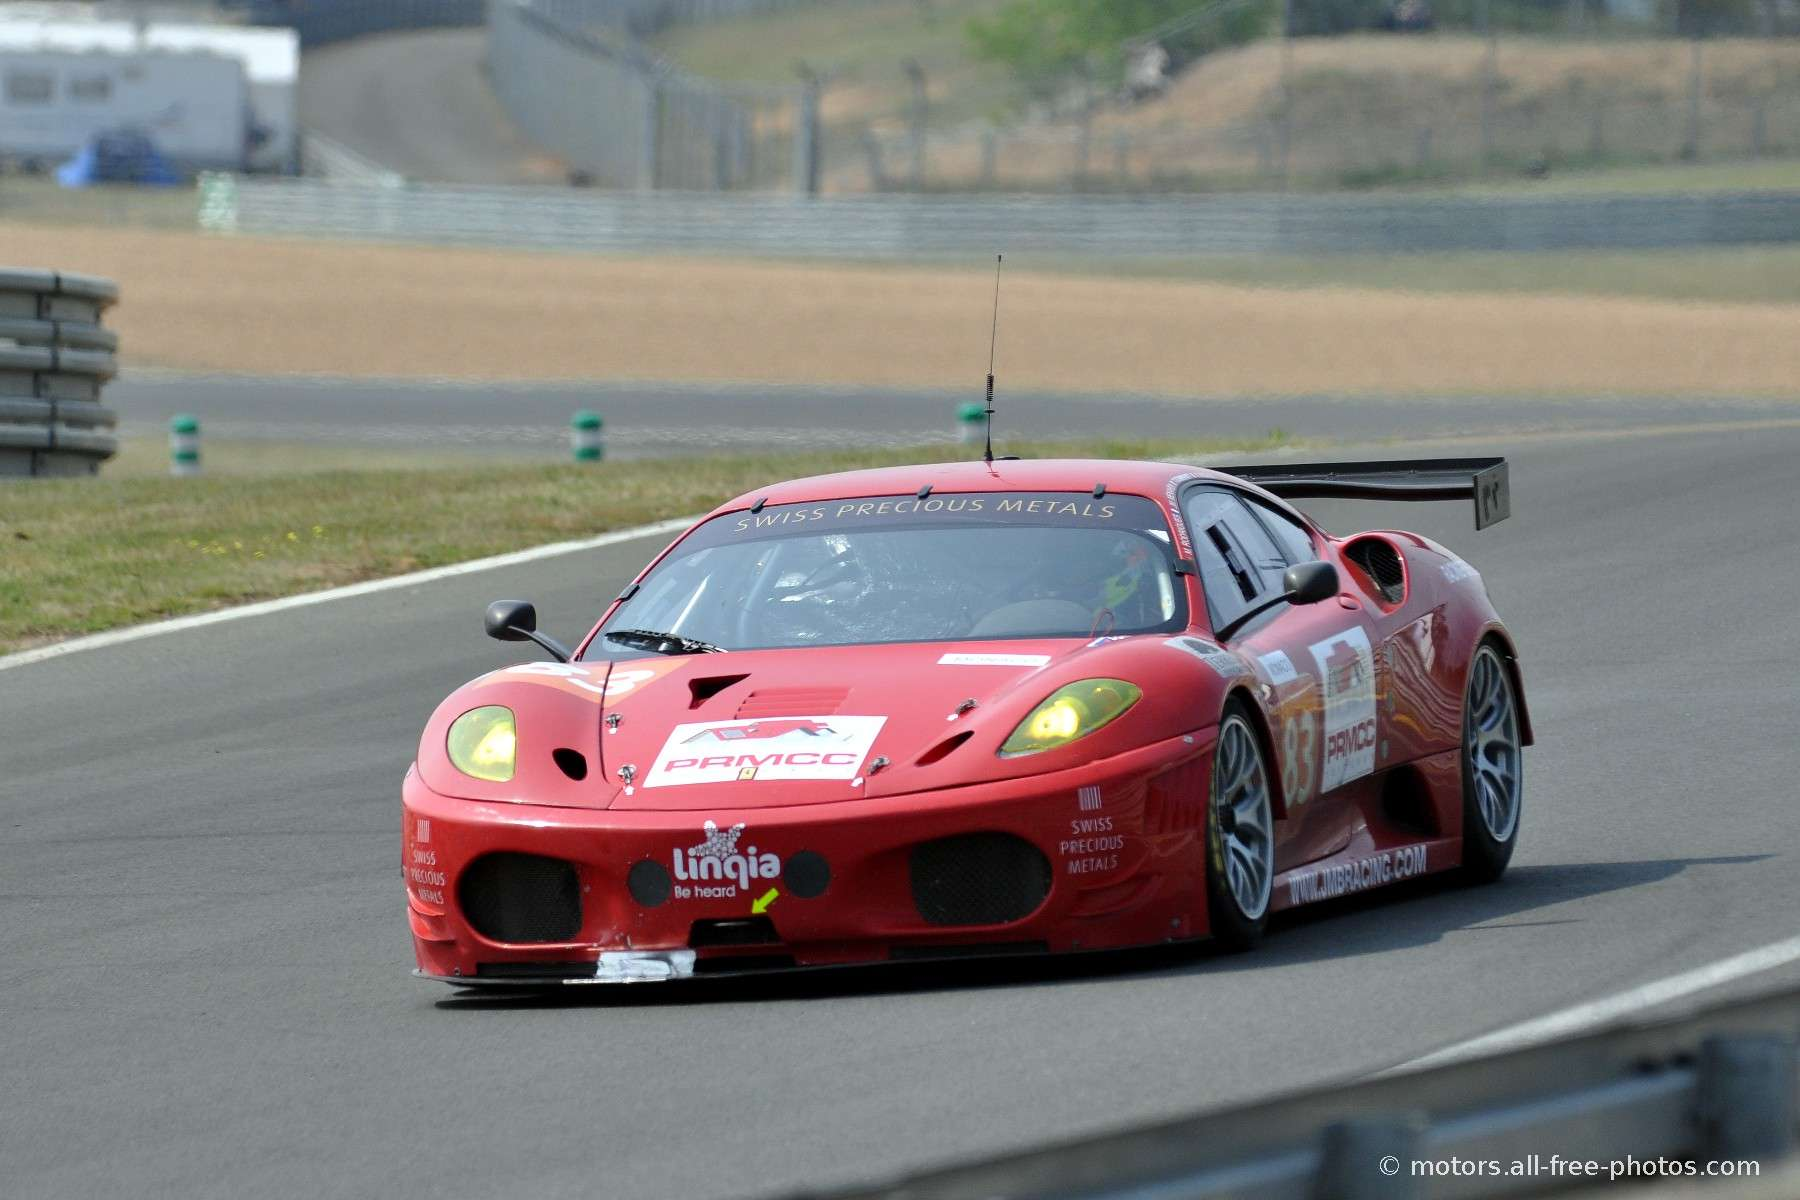 Ferrari F430 - Team JMB RAcing